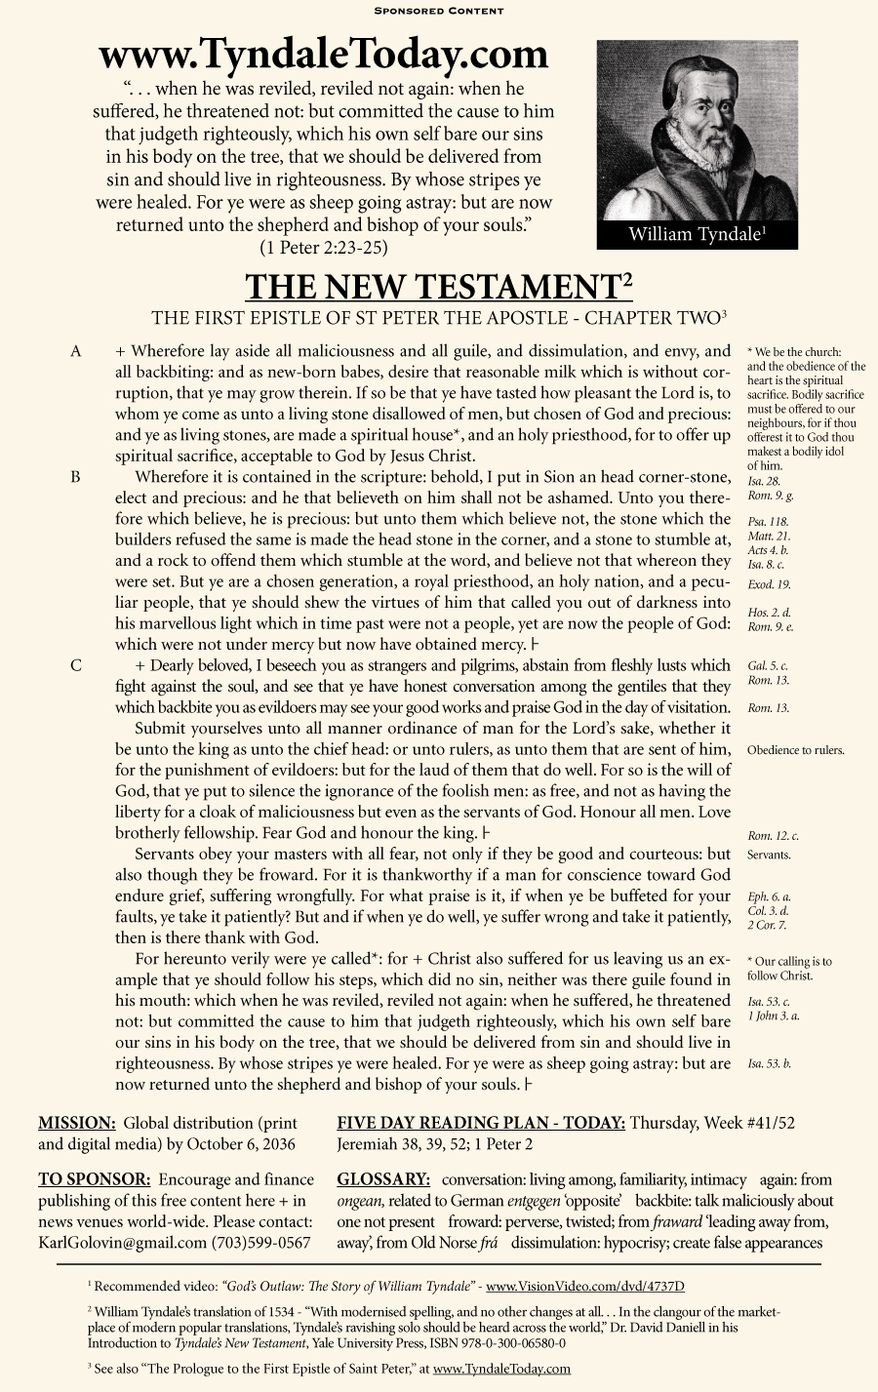 A daily reading of William Tyndale's 1534 translation of The New Testament from Tyndale Today. (Sponsored content October 12, 2017 in The Washington Times)